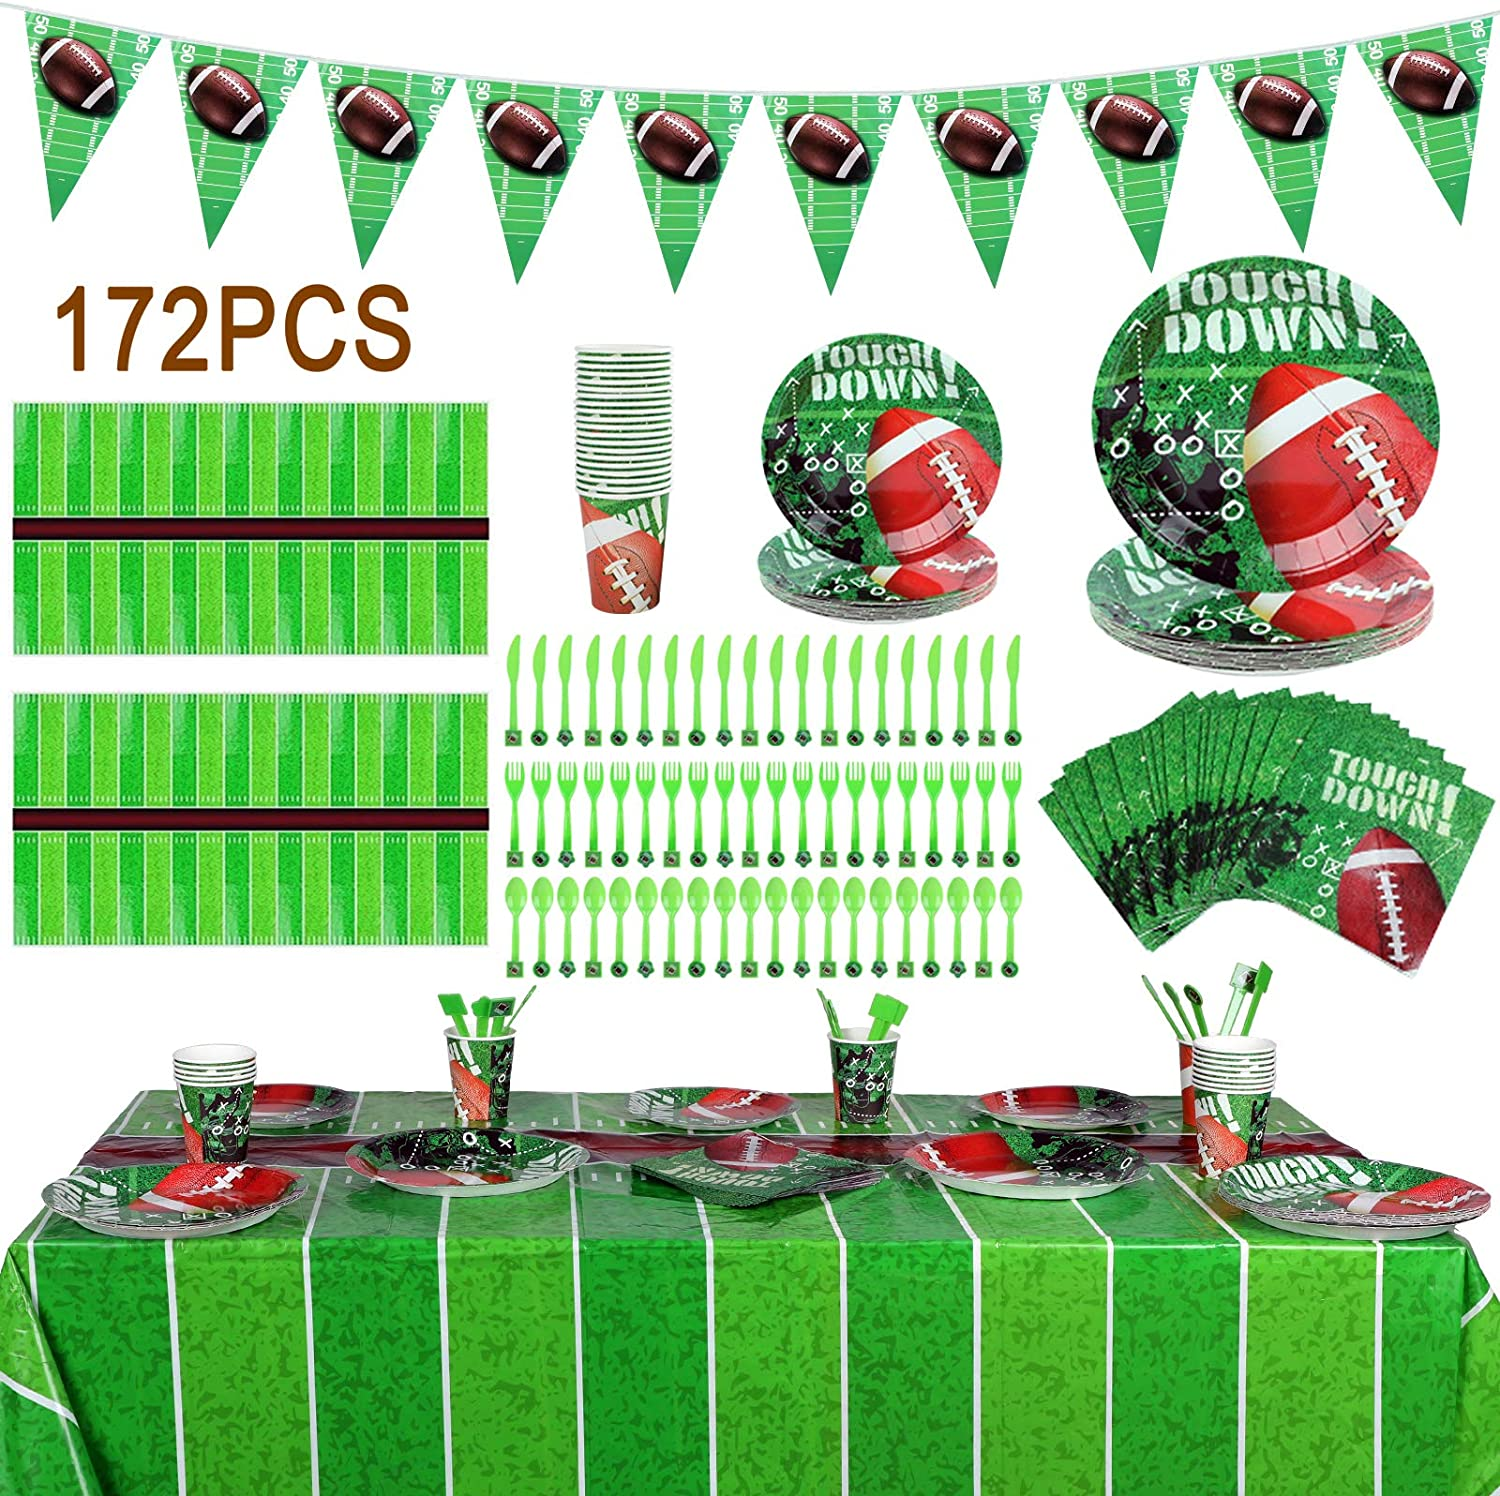 Our shop OFFers the best service Sunnyholiday 172PCS Football Purchase Theme Set Party Supplies Decoration